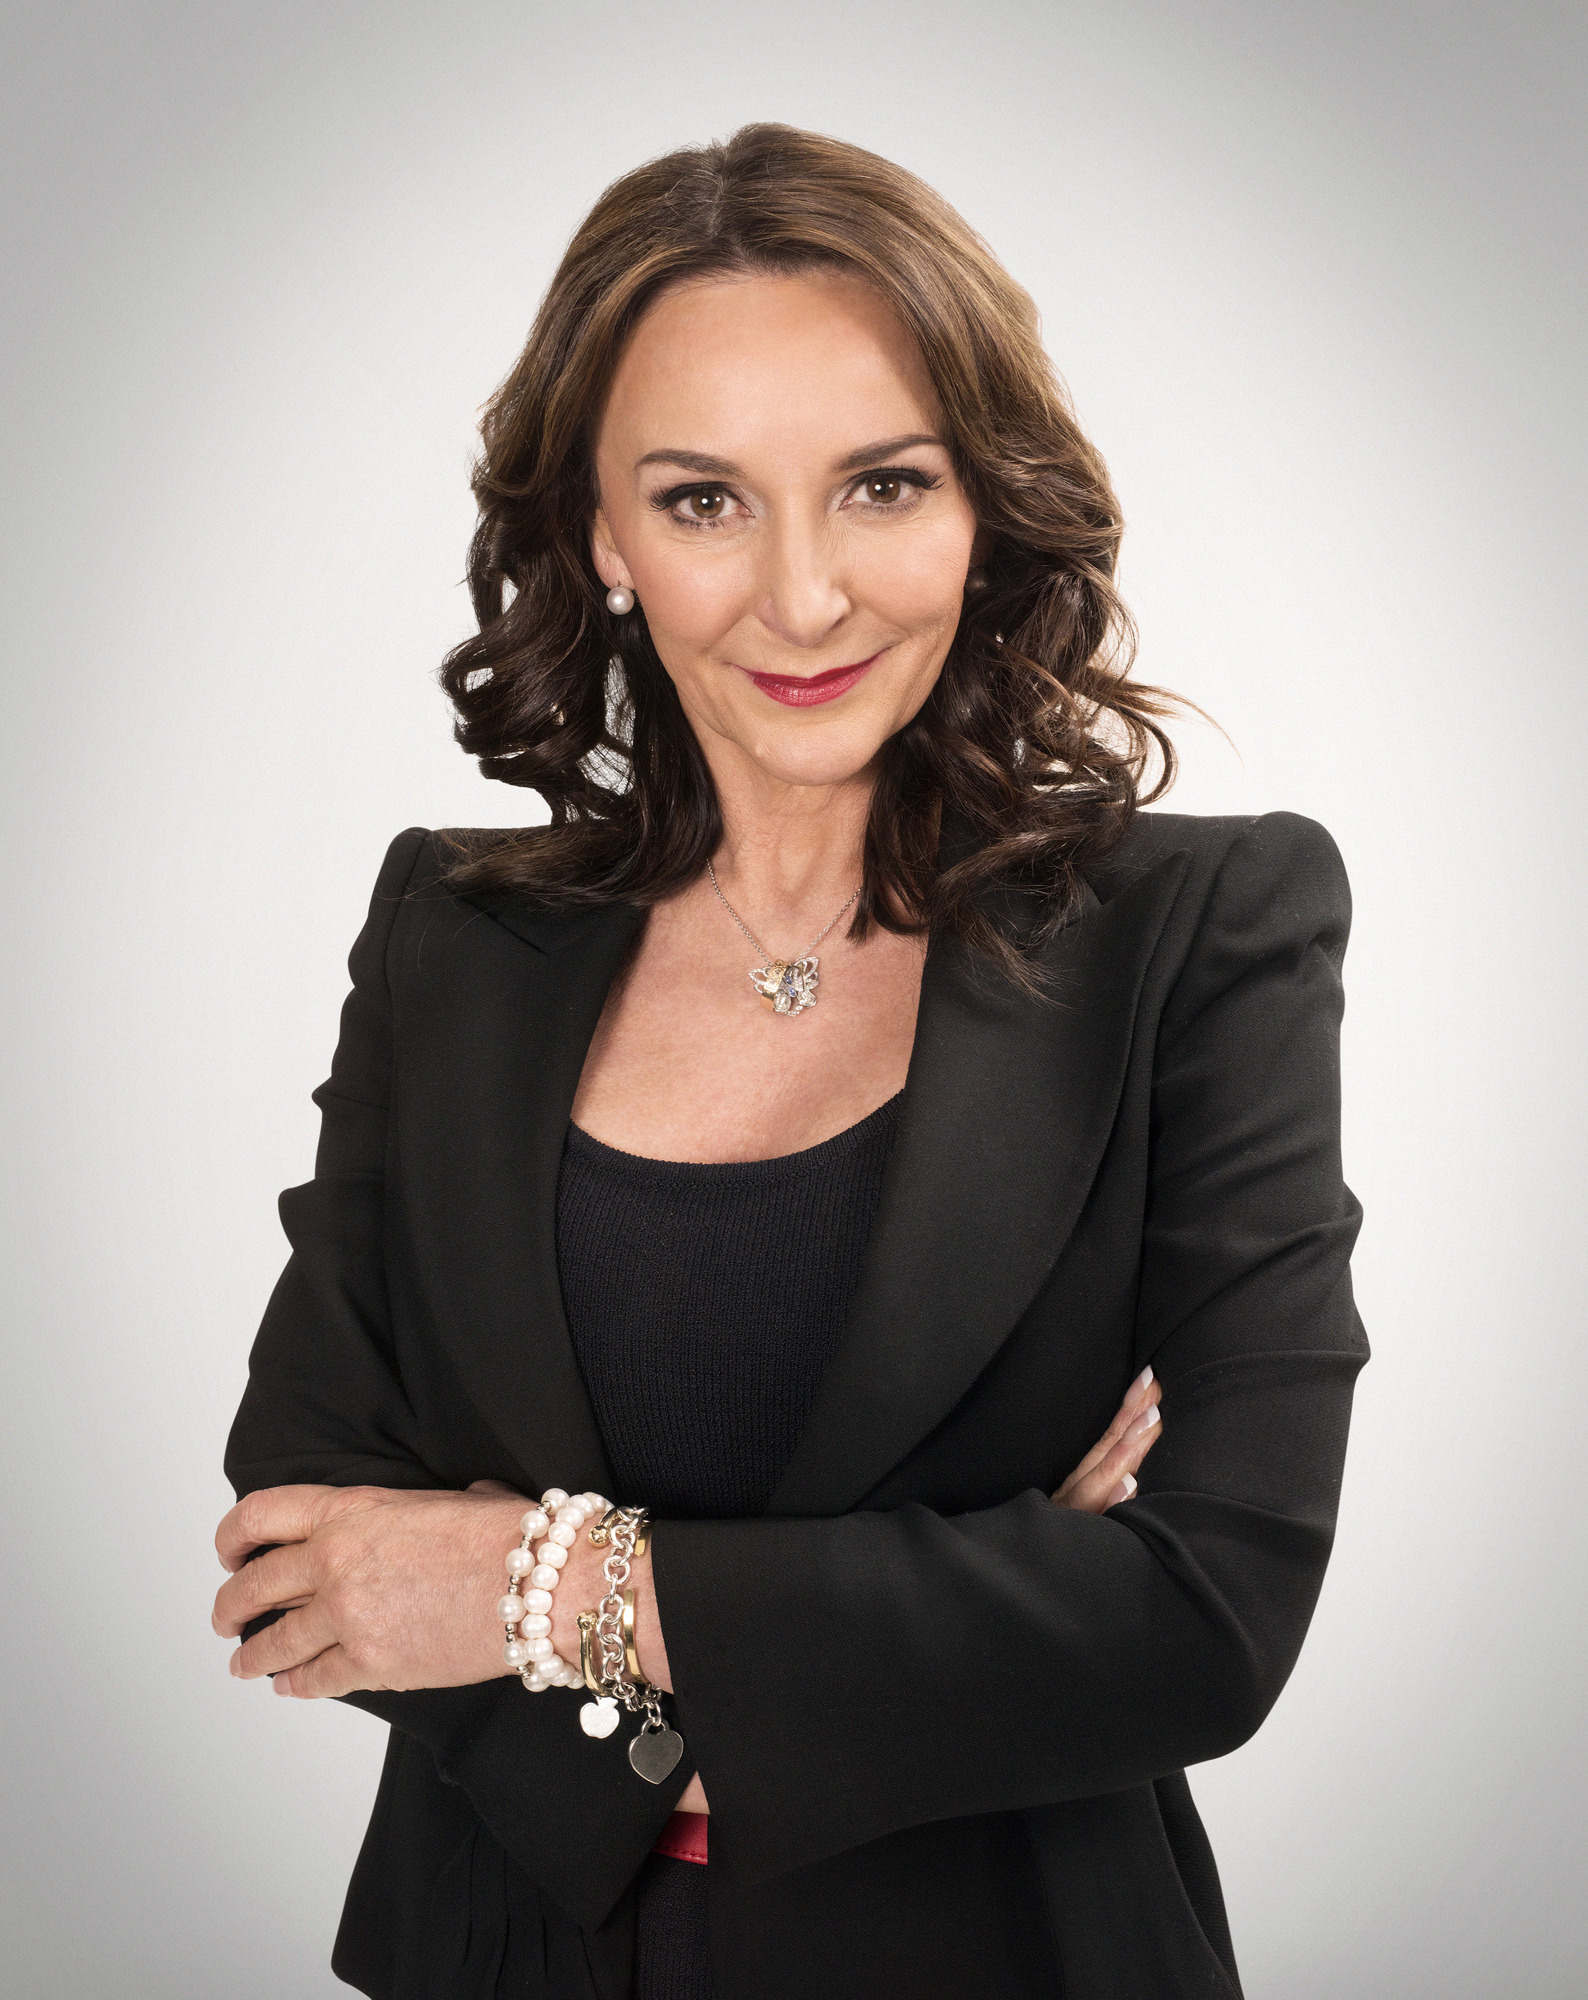 Shirley Ballas, the British-born Ballroom and Latin dancer and international coach, has been confirmed as the new judge on BBC One's Strictly Come Dancing.  Originally from Wallasey, Shirley is a former 'British Open to the World' Champion, European, German, United Kingdom, United States and International Latin American Champion.  She retired from competitive dancing in 1996. Shirley is now an acclaimed and respected international coach to many of the top professional and amateur dancers as well as a highly renowned sought-after adjudicator for Ballroom and Latin American competitions judging all around the world.  Shirley Ballas - (C) BBC - Photographer: Steve Schofield